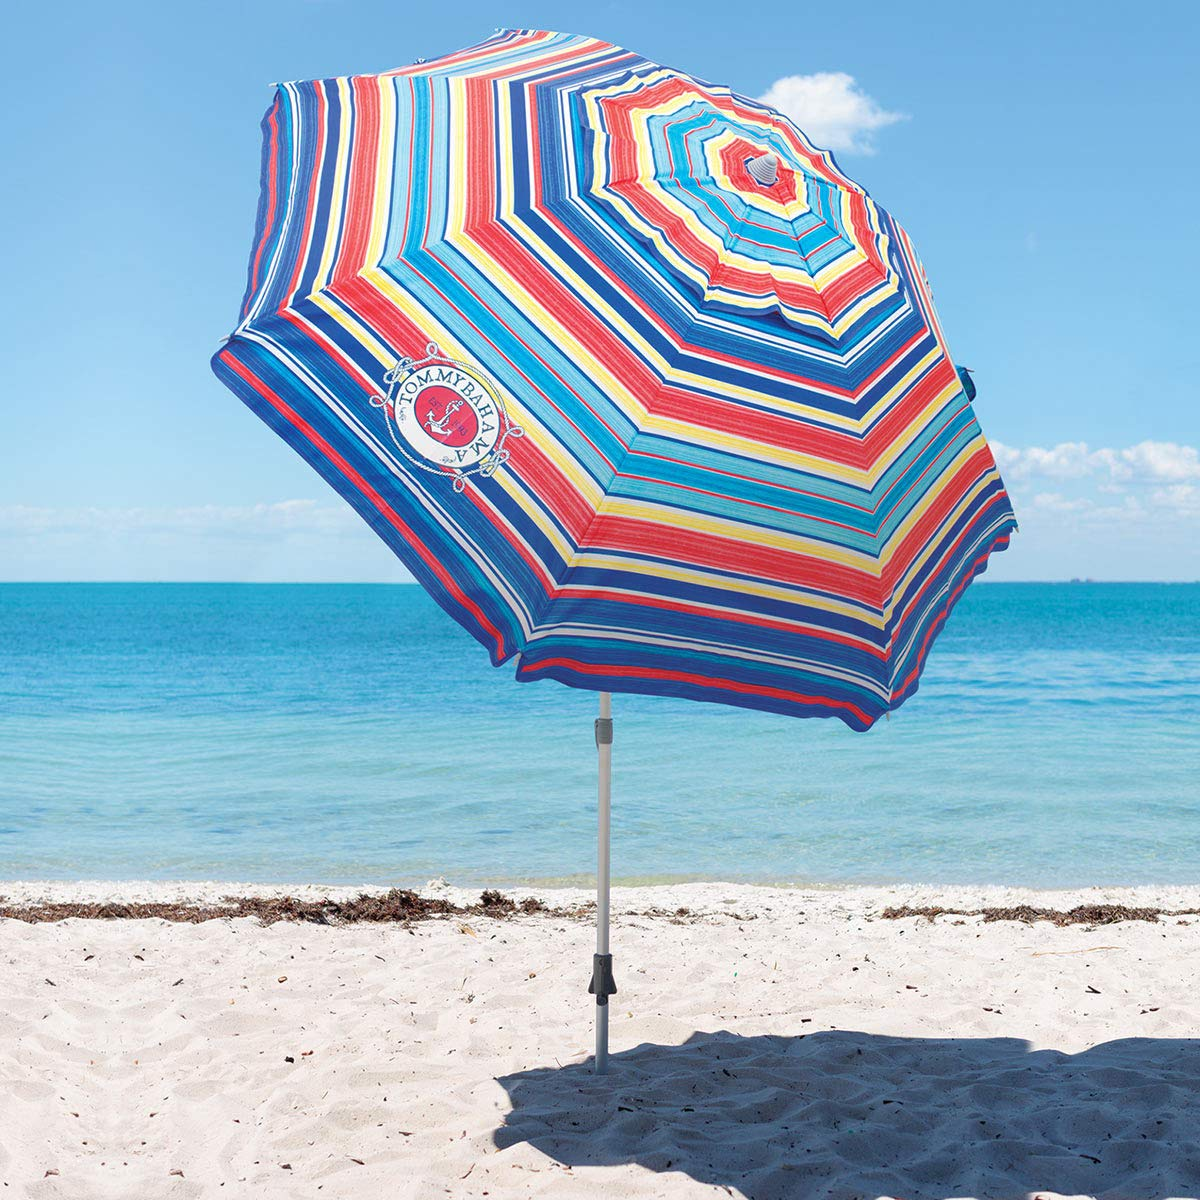 Beach Chairs And Umbrella by Balboa Fun Tours